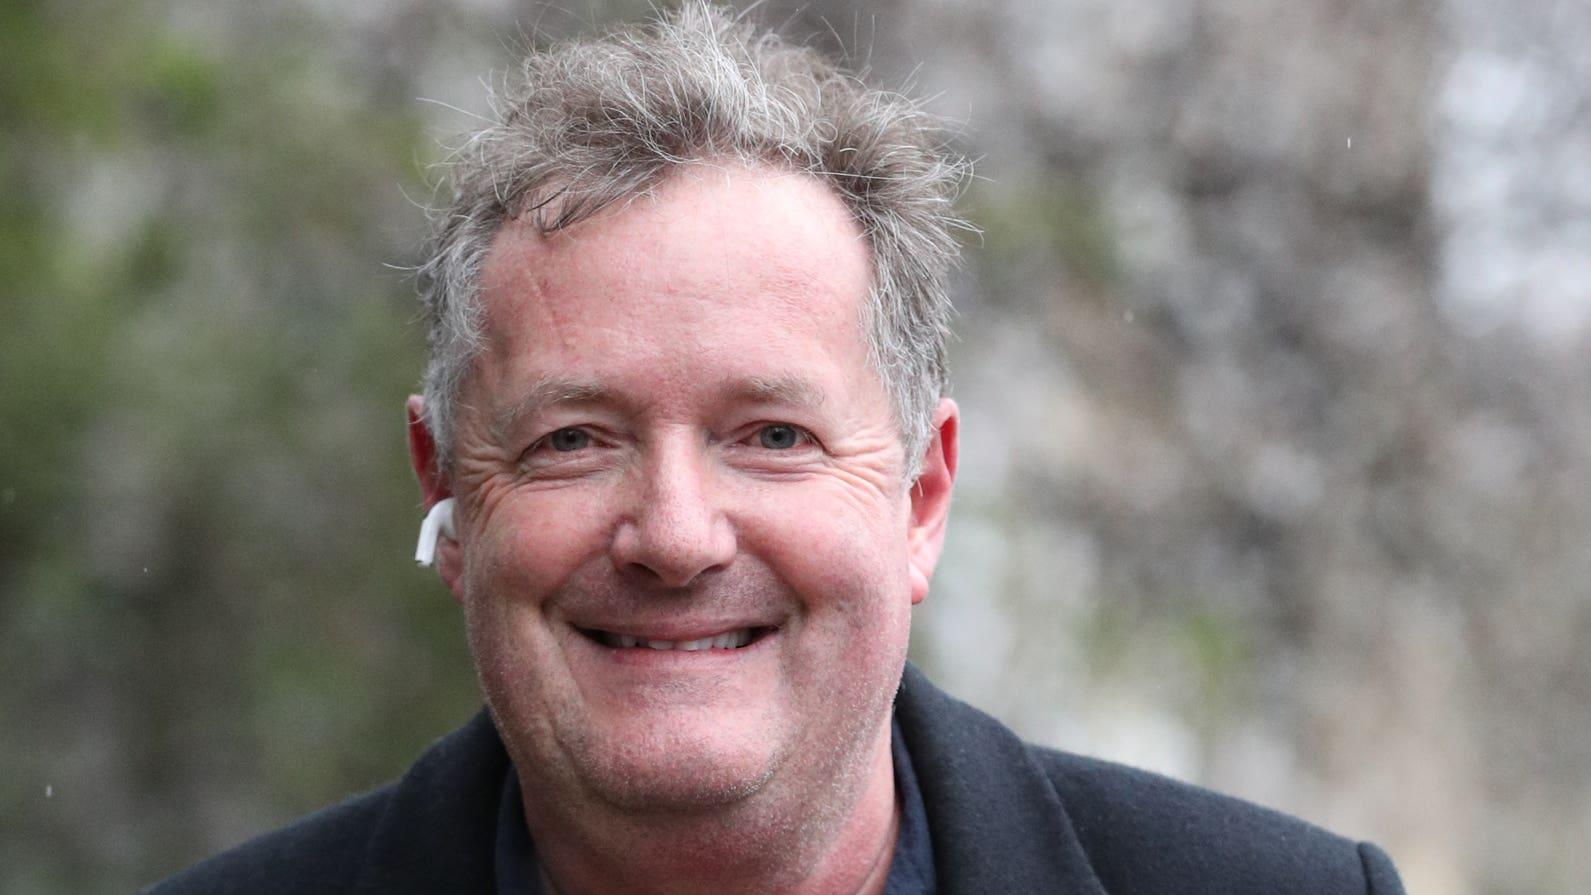 Piers Morgan: The British public backs me over Harry and Meghan